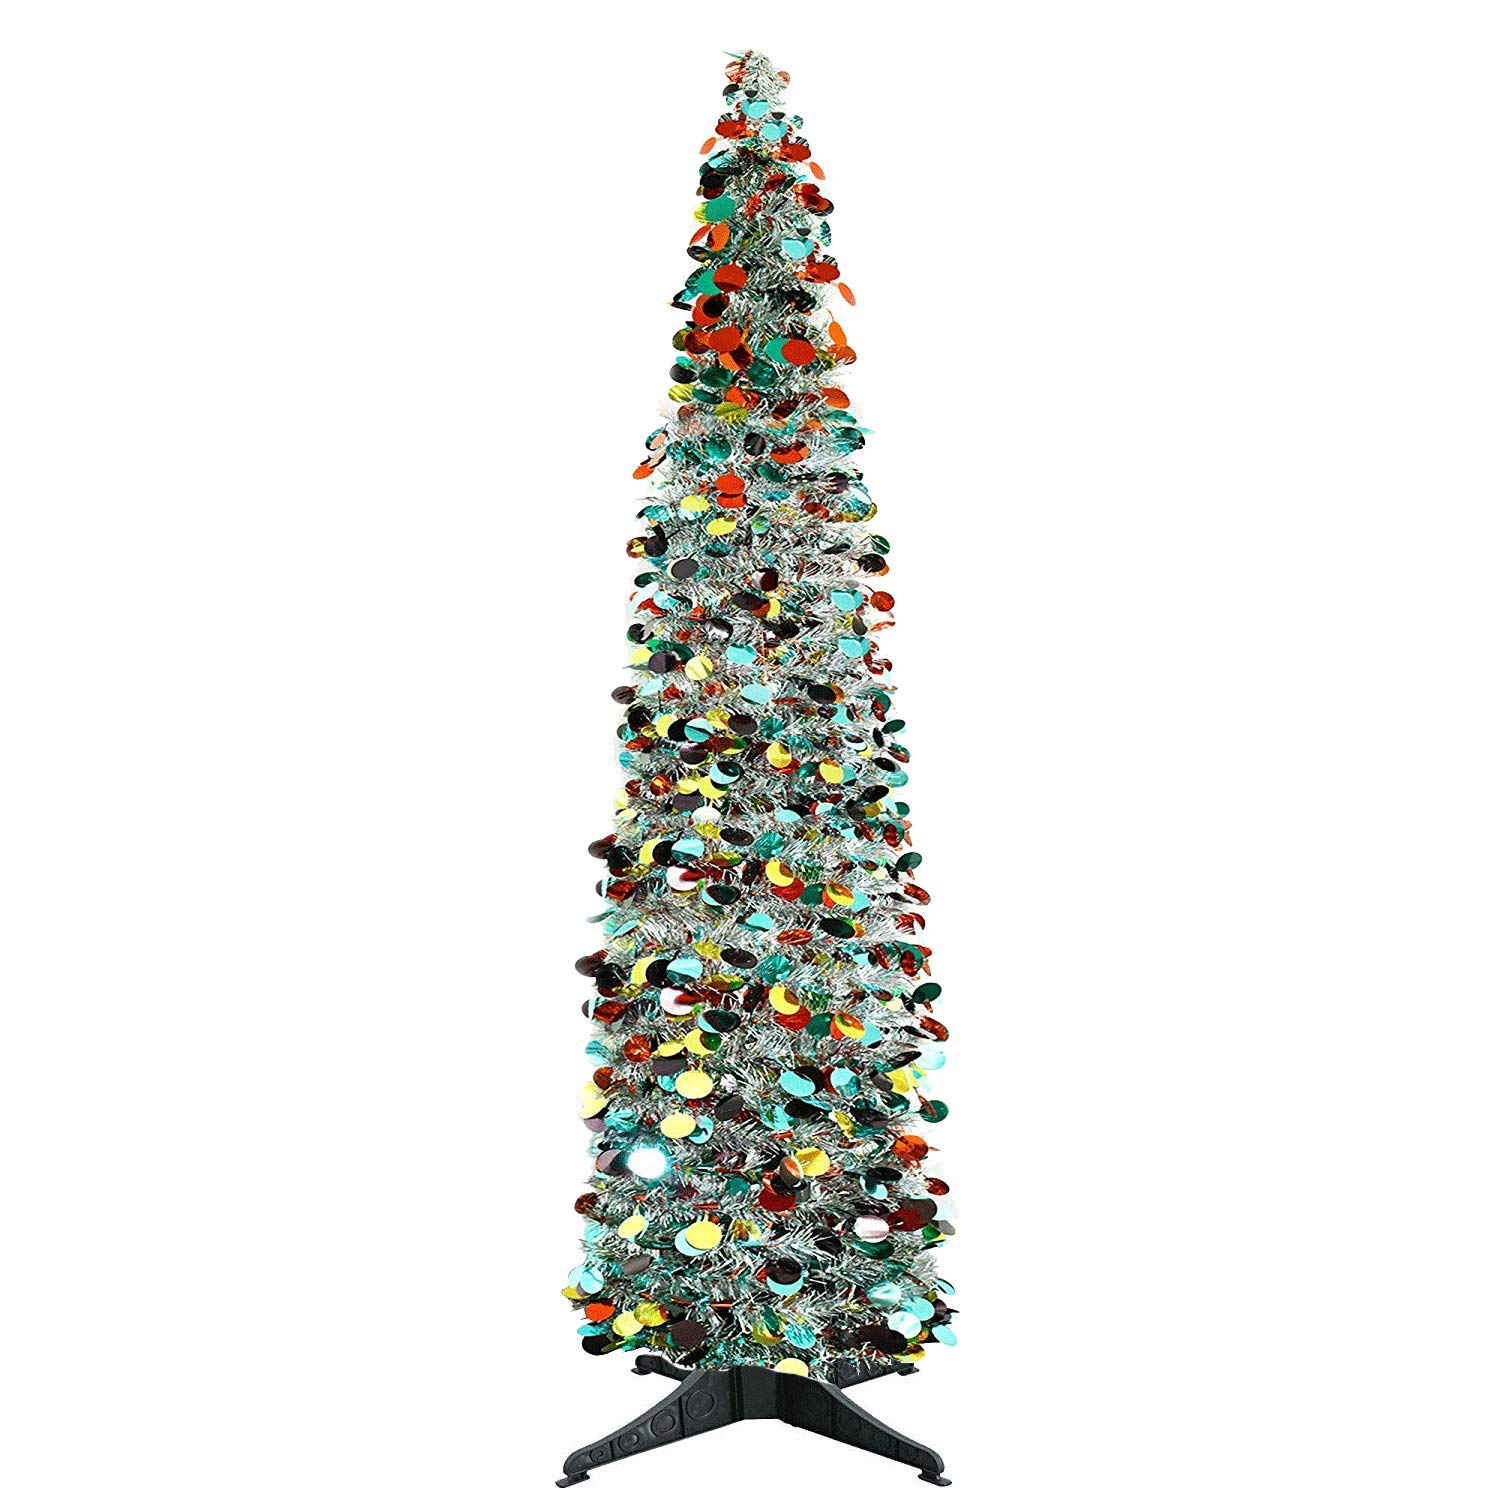 Yuqi 5 Ft Pop Up Artificial Trees Collapsible With Stand 70 Reusable For Christmaspartynext New Yearwedding Seasonal Home Decor Partysilver Point